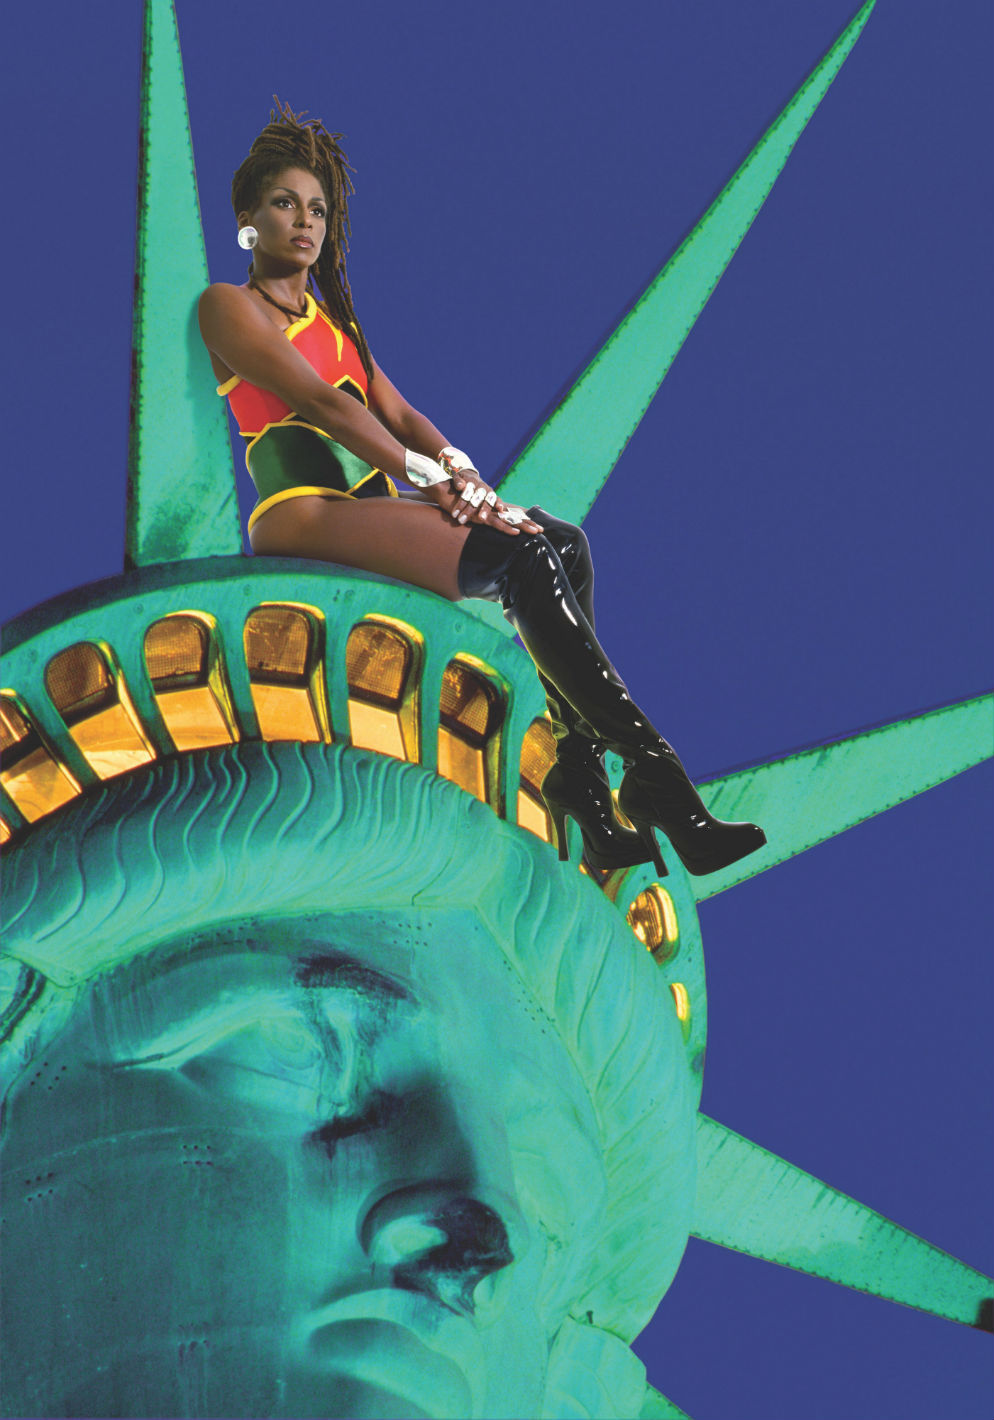 Renée Cox, Chillin' with Liberty